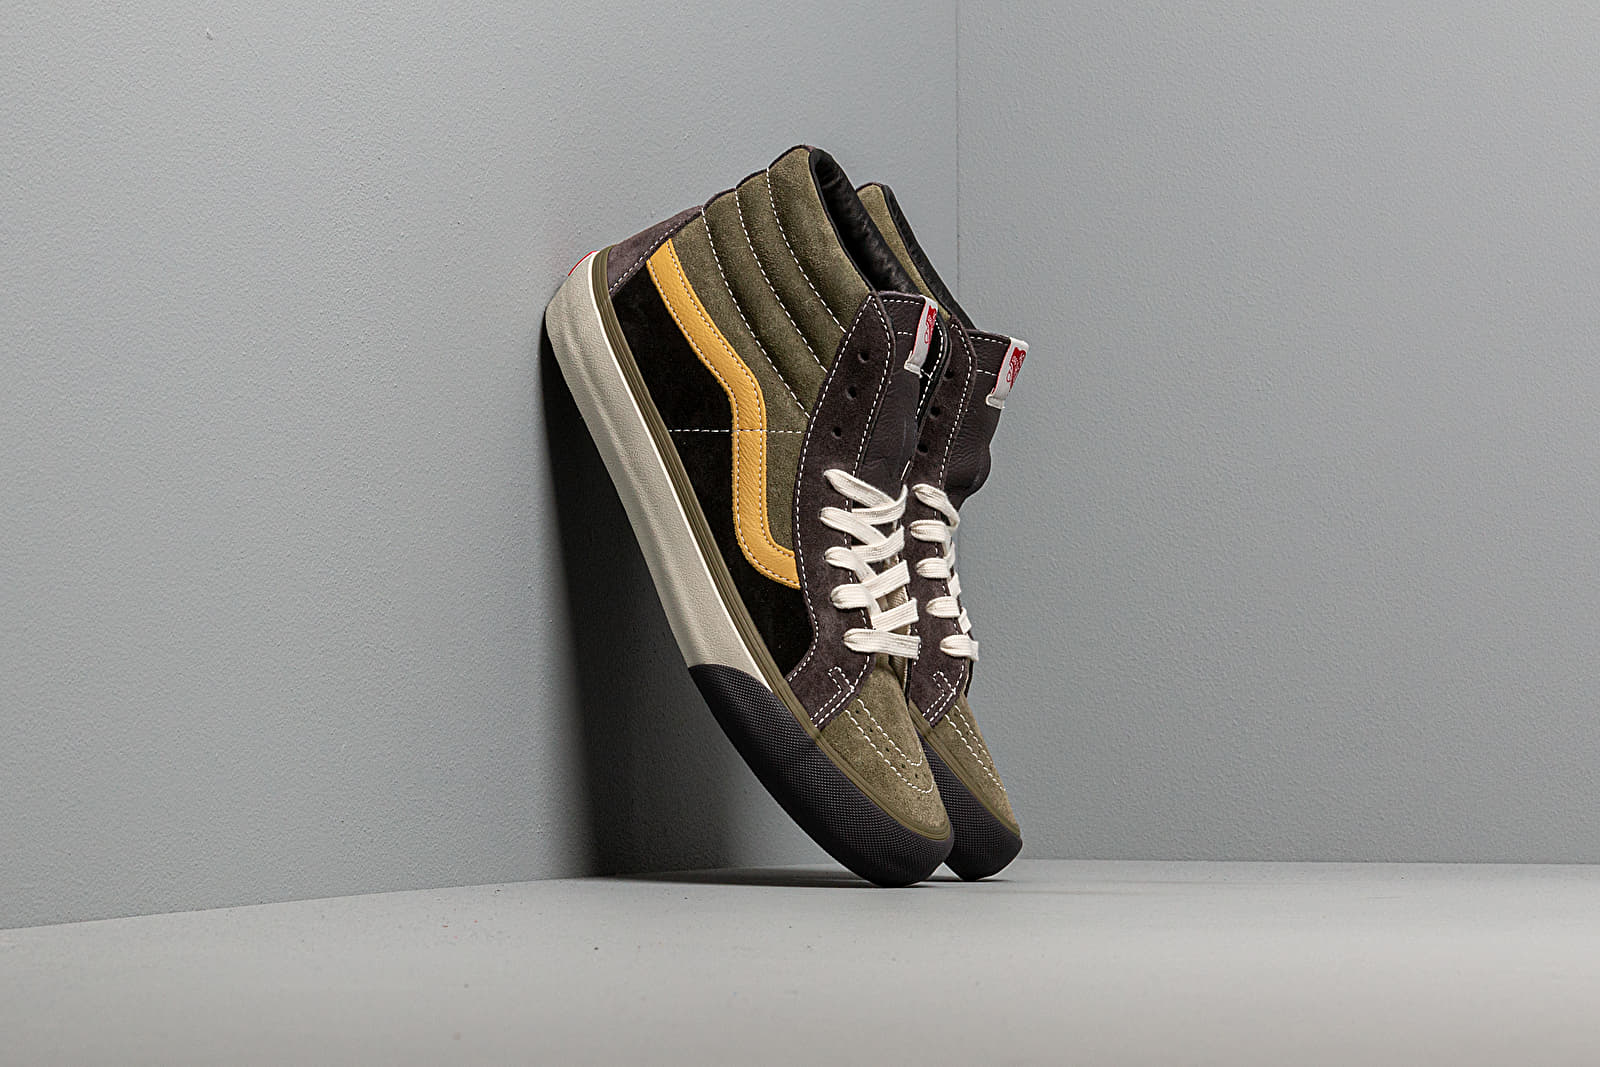 Vans SK8-Hi Reissue VL (Suede/ Leather)